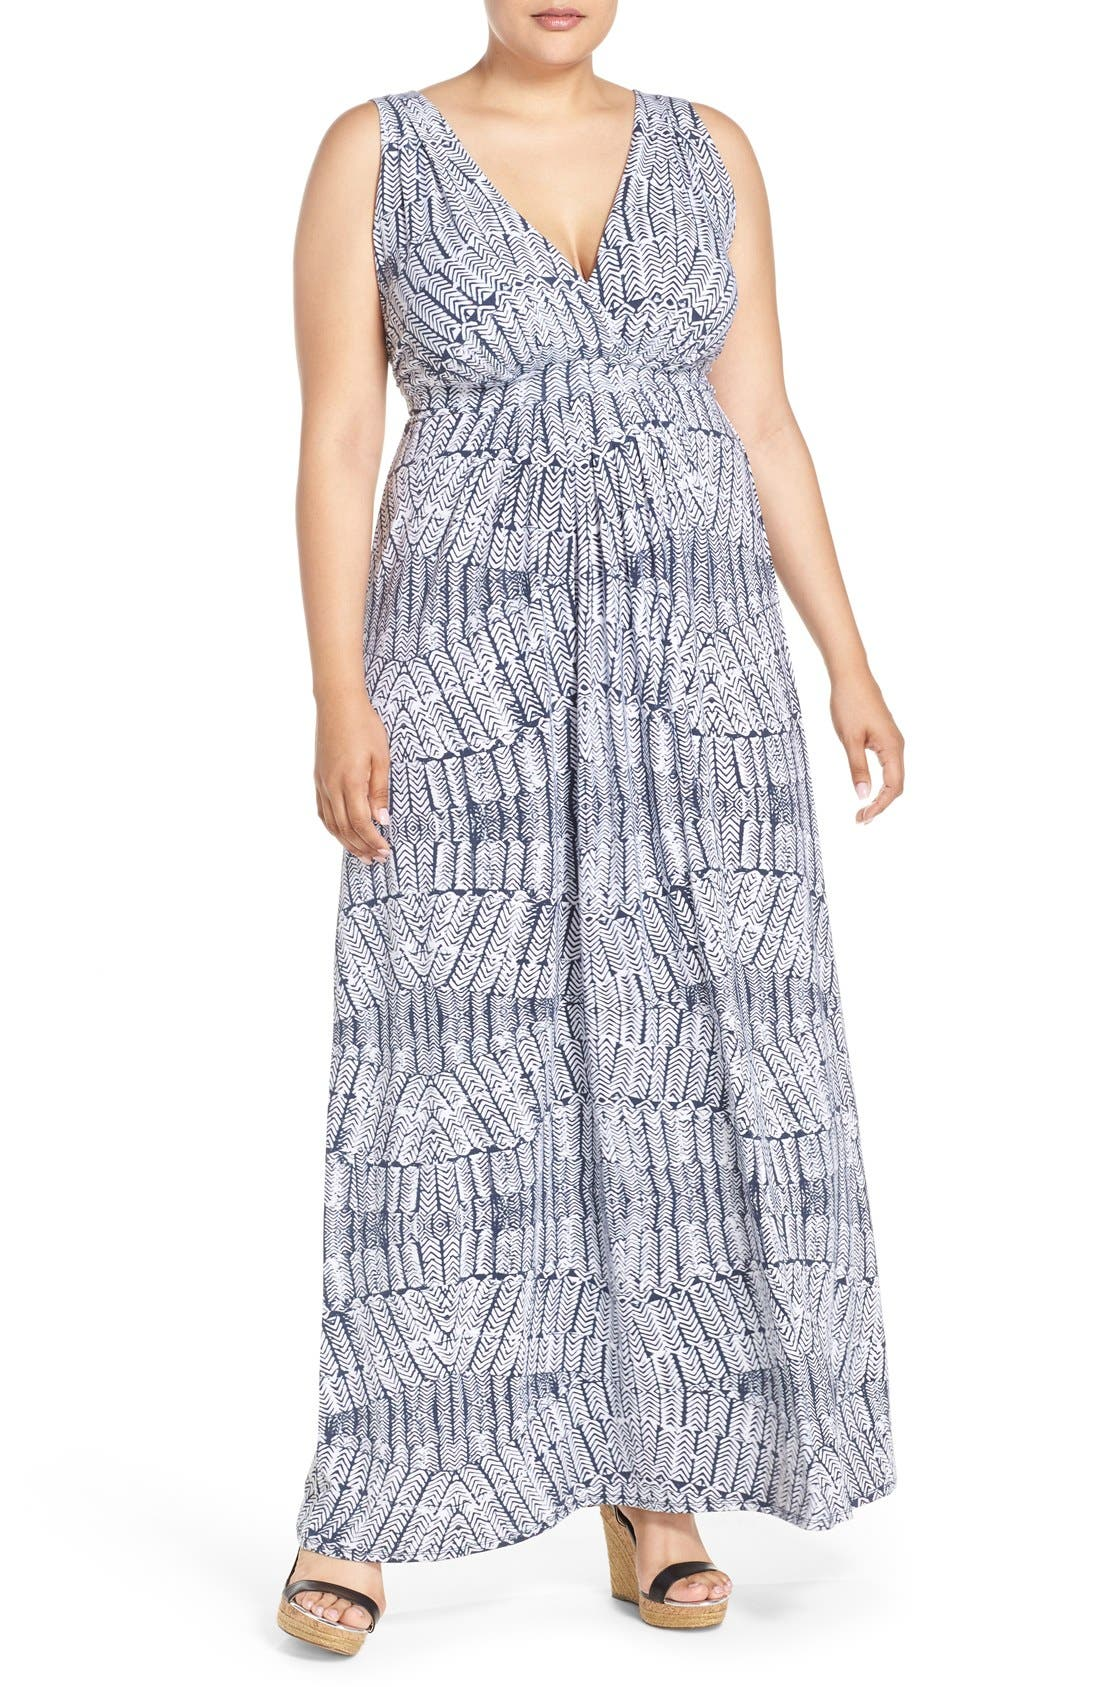 Tart Chloe Empire Waist Maxi Dress (Plus Size)